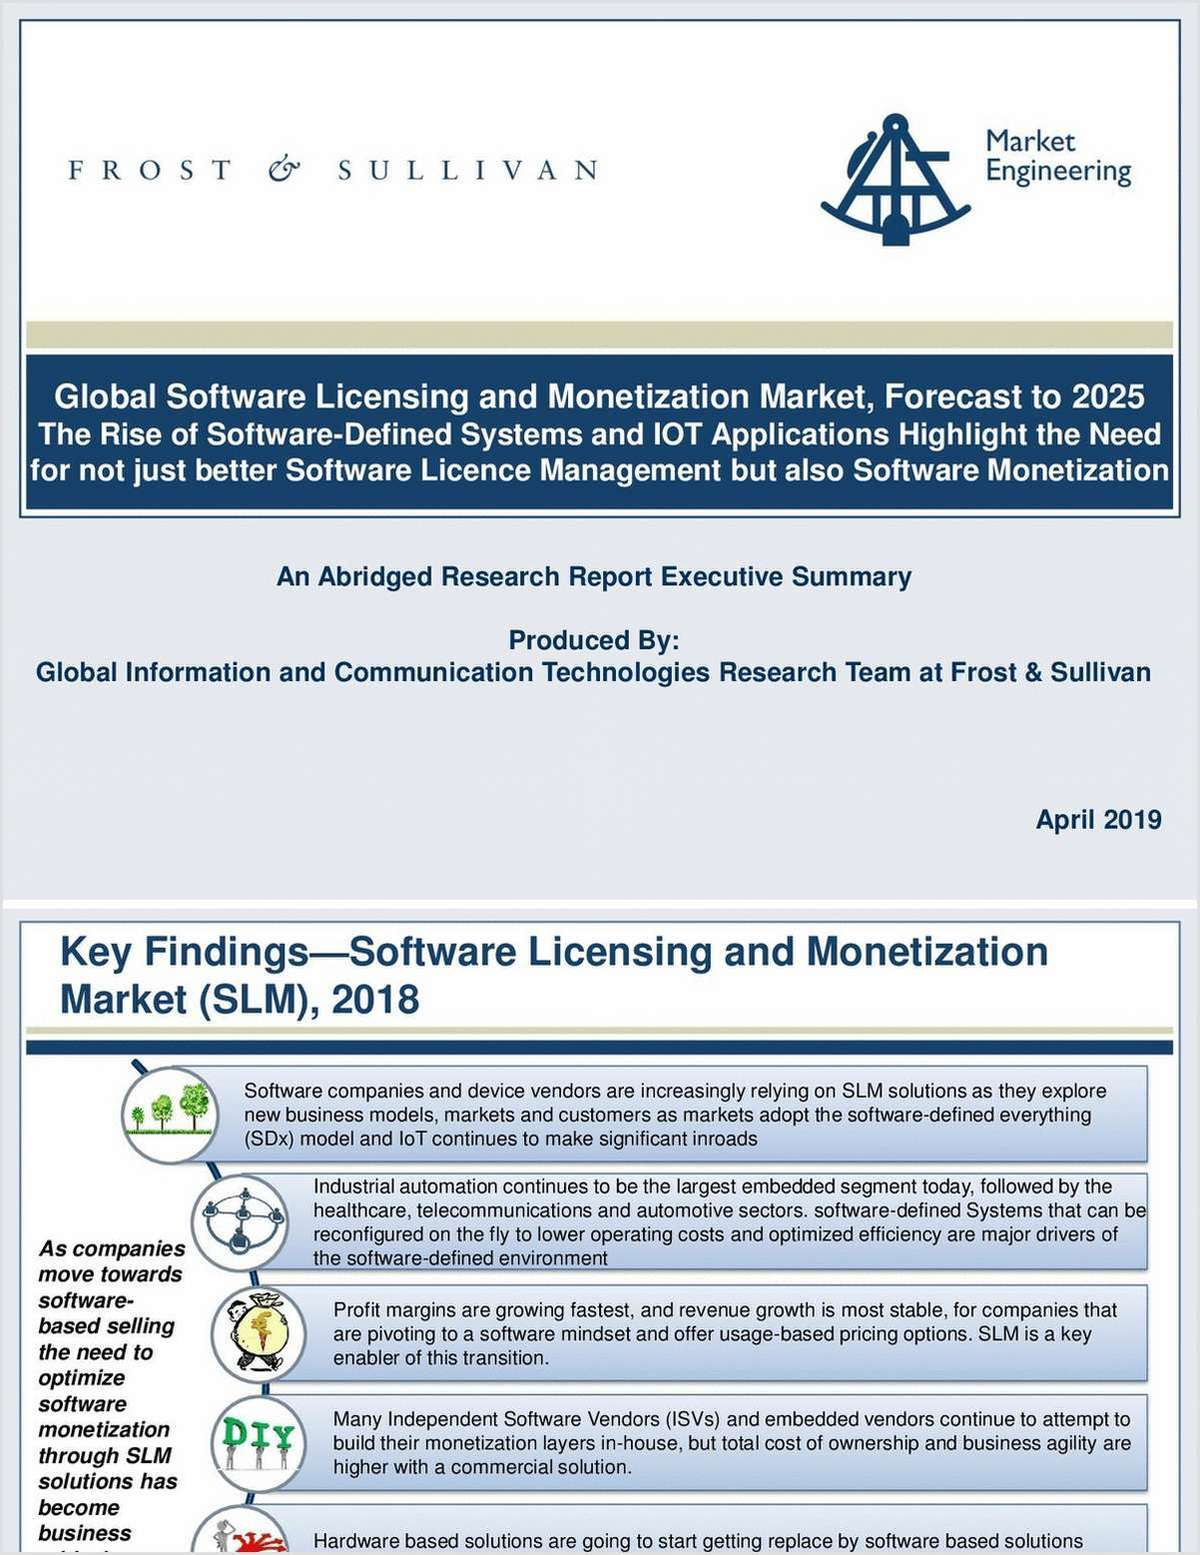 Frost & Sullivan: Global Software Licensing and Monetization Market, Forecast to 2025